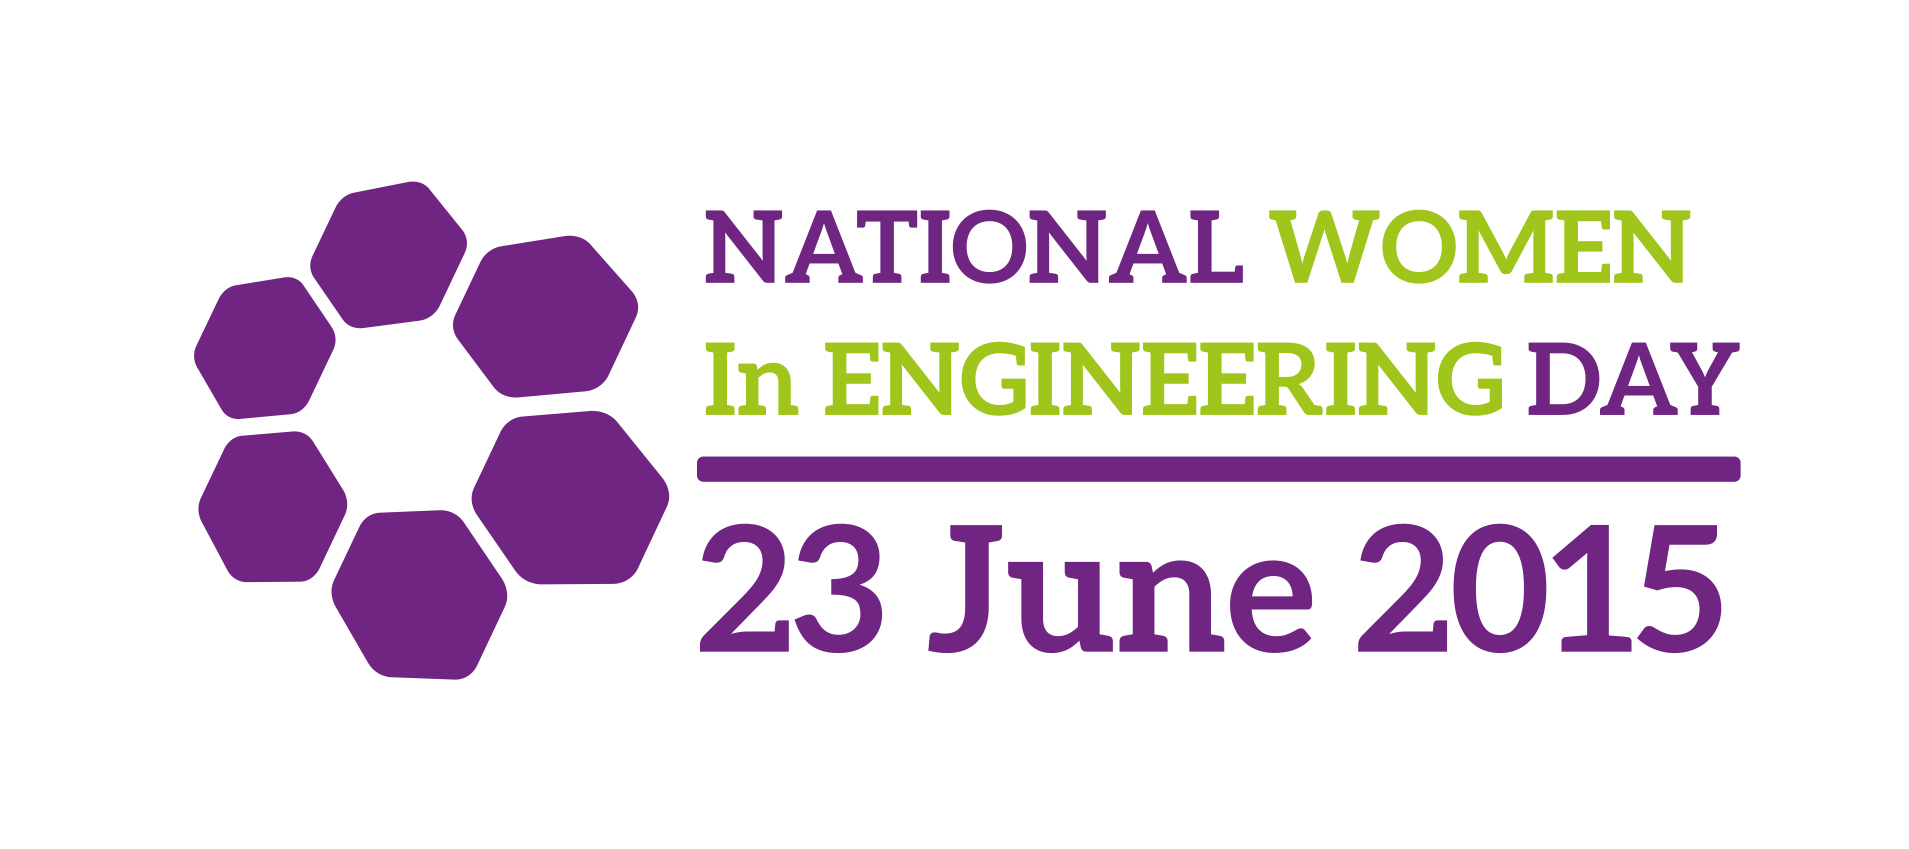 National Women in Engineering day 23 June 2015